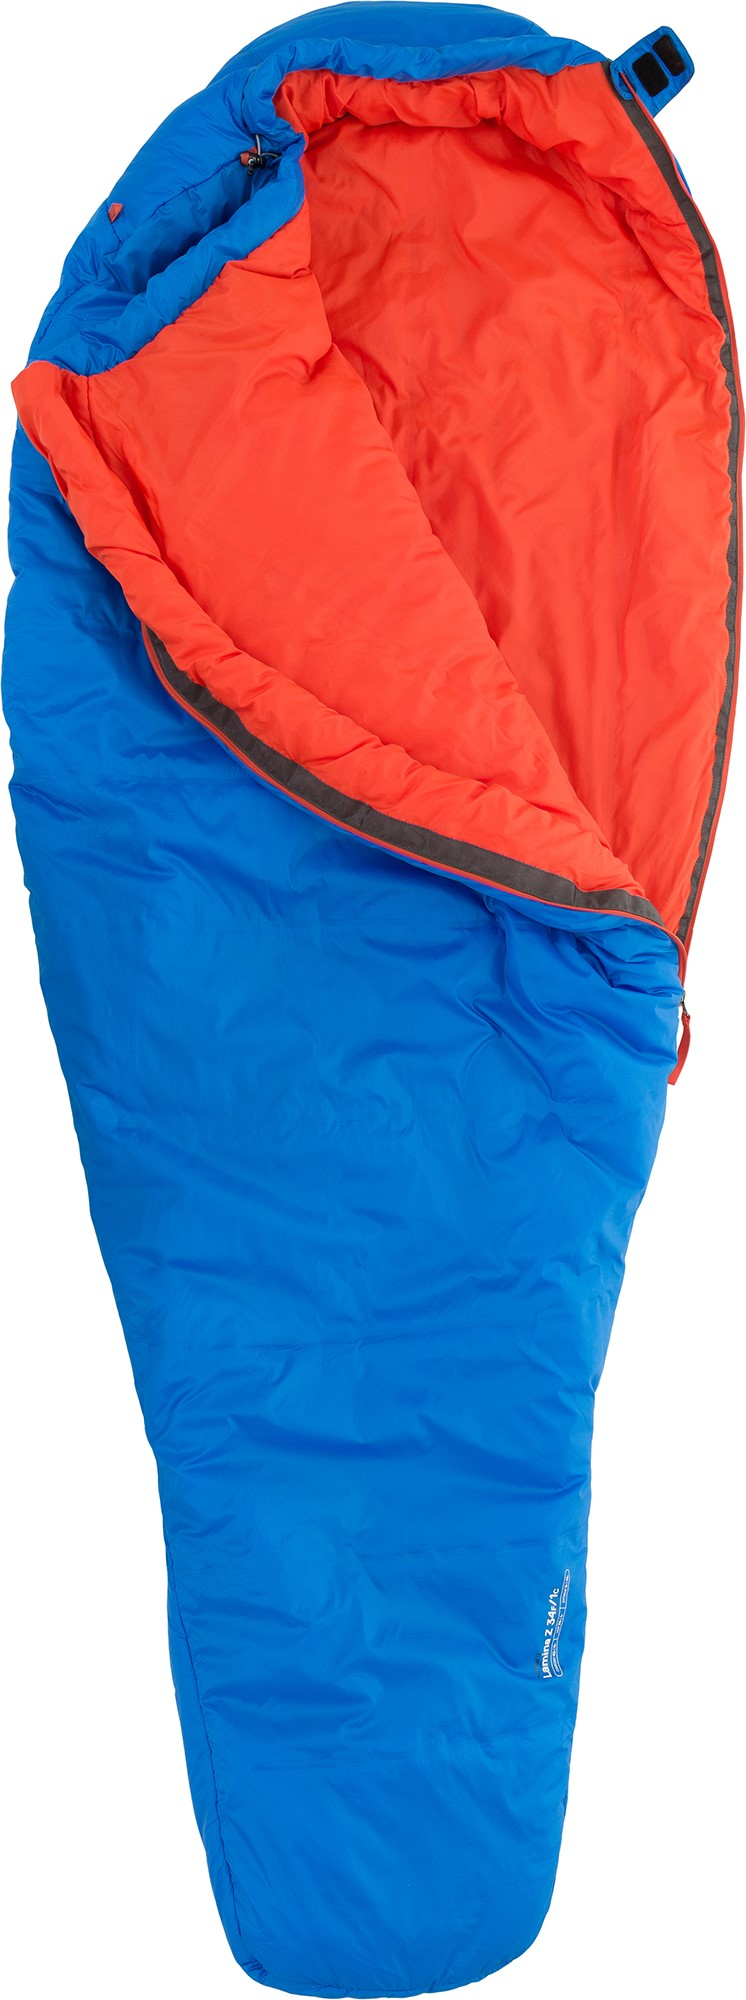 Mountain Hardwear Mountain Hardwear Lamina™ Z 34F/1C Long, размер 198L цена